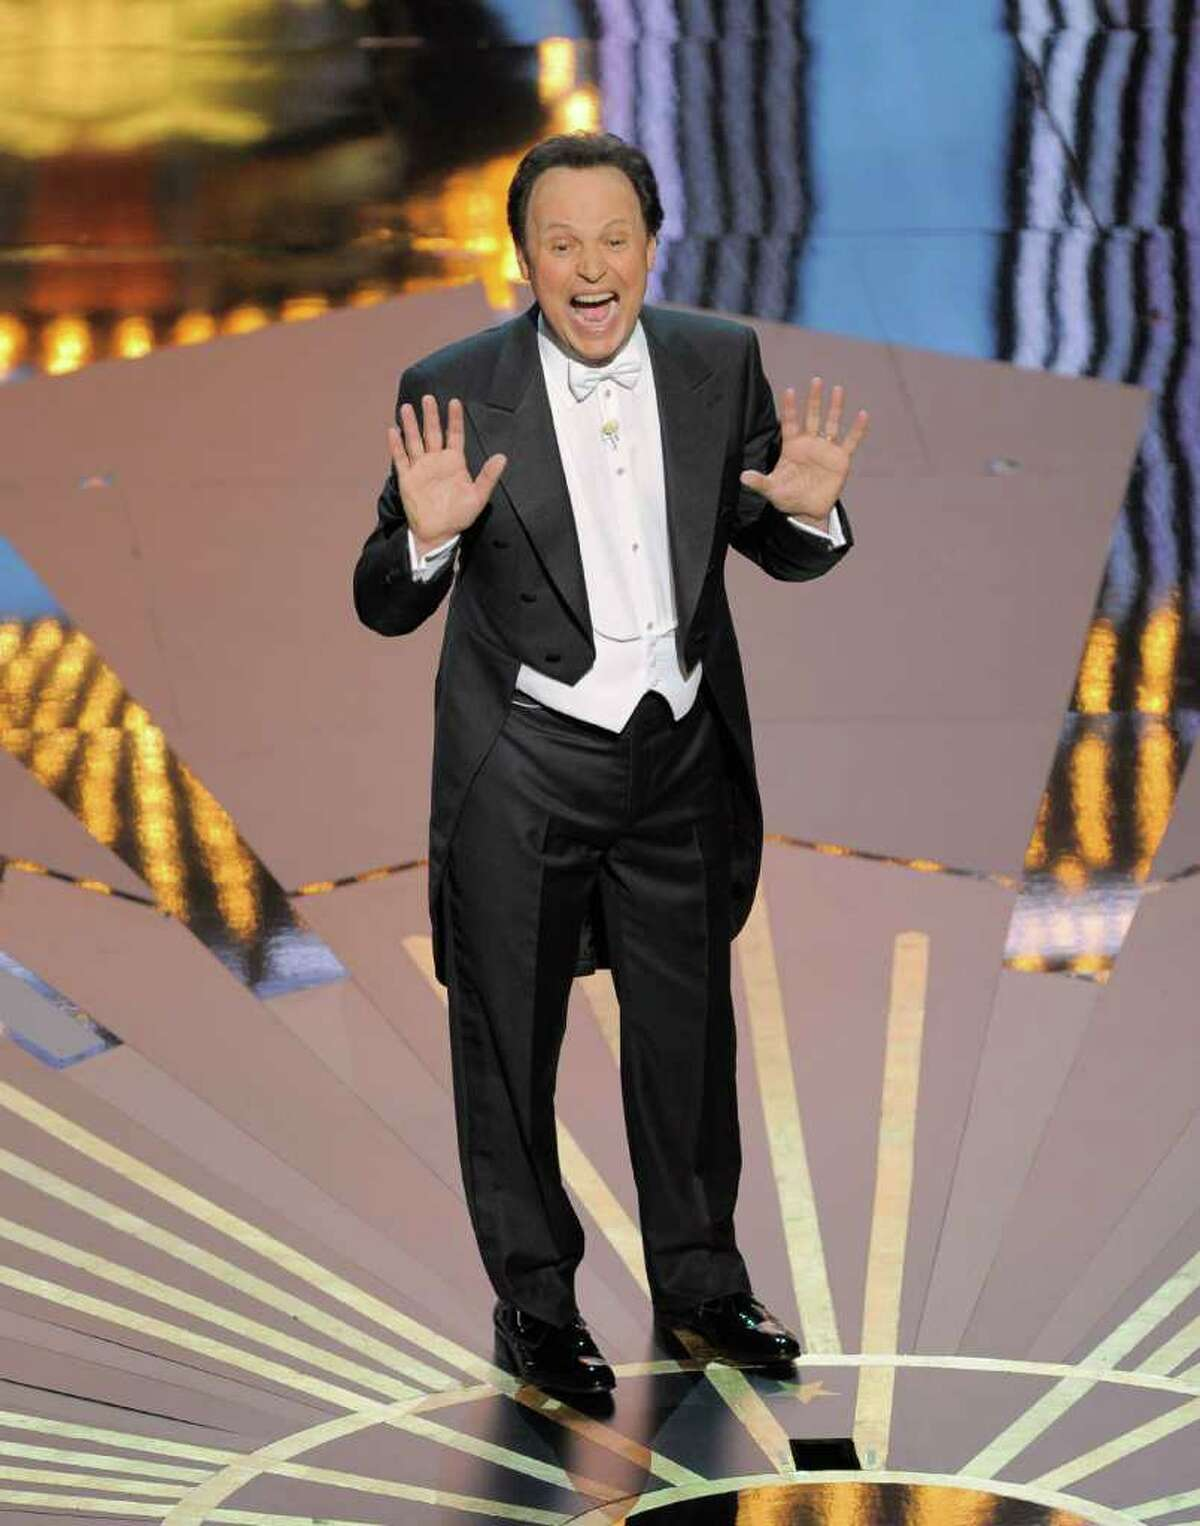 Host Billy Crystal performs onstage during the 84th Academy Awards on Sunday, Feb. 26, 2012, in the Hollywood section of Los Angeles. (AP Photo/Mark J. Terrill)